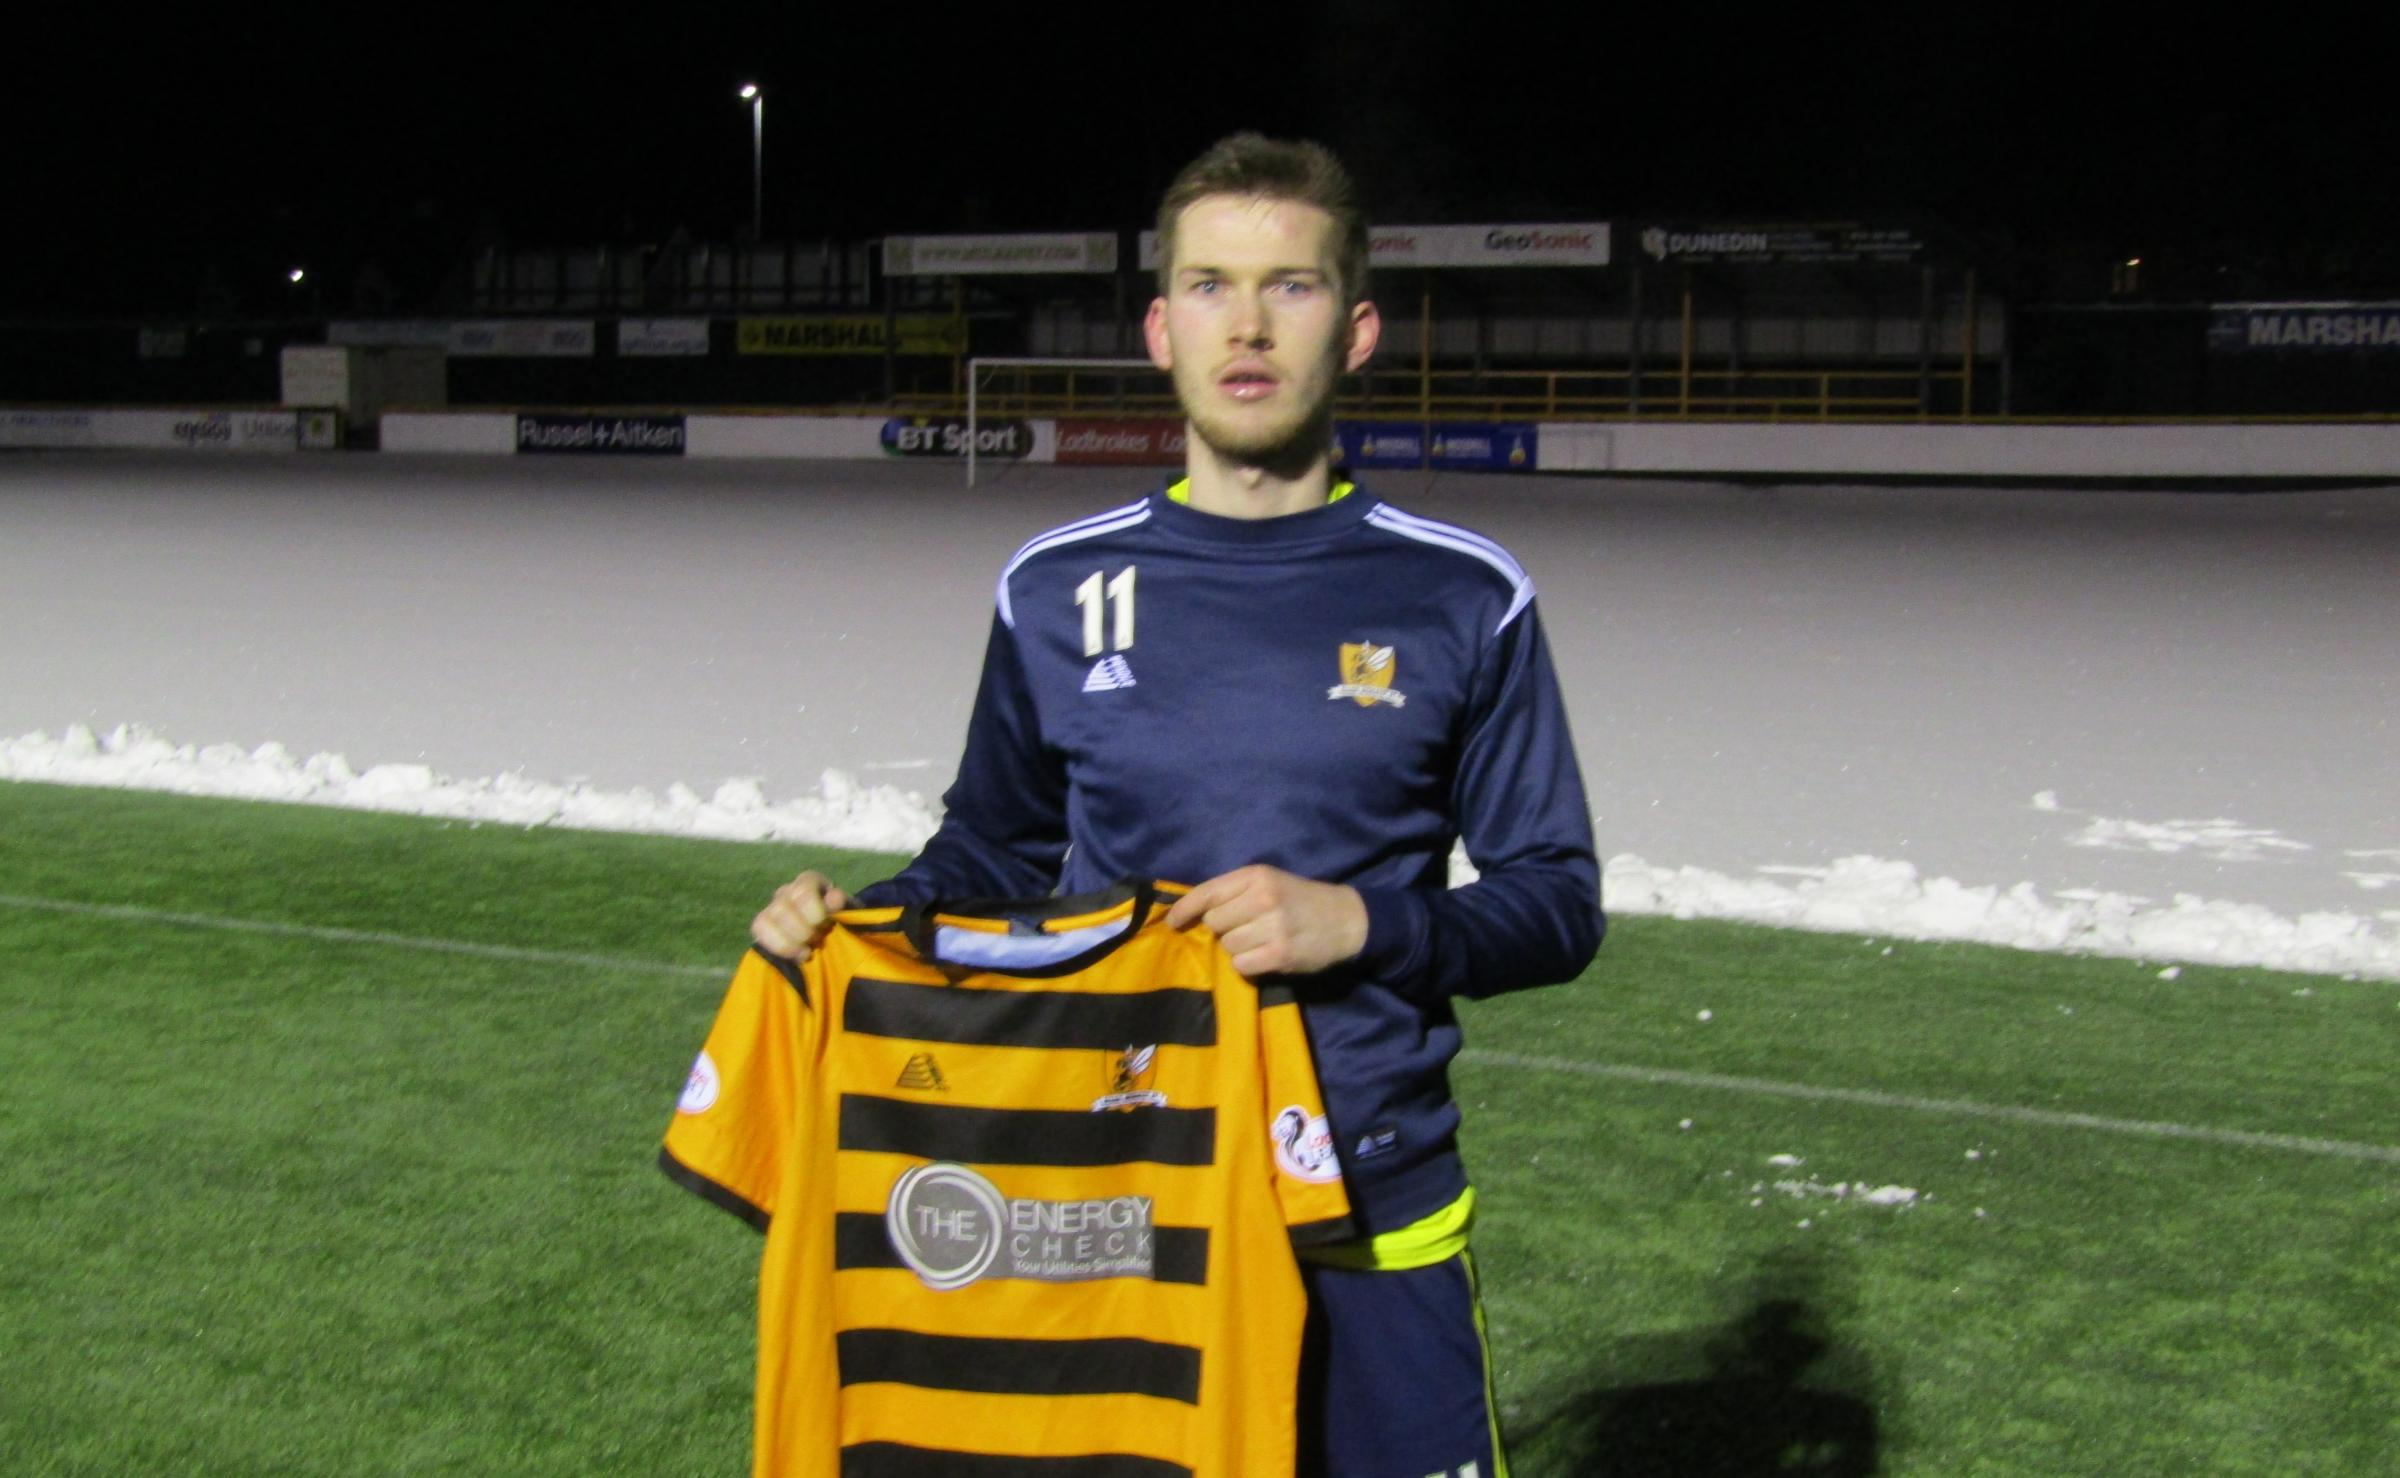 Alloa's newest recruit is eyeing Scottish Cup debut